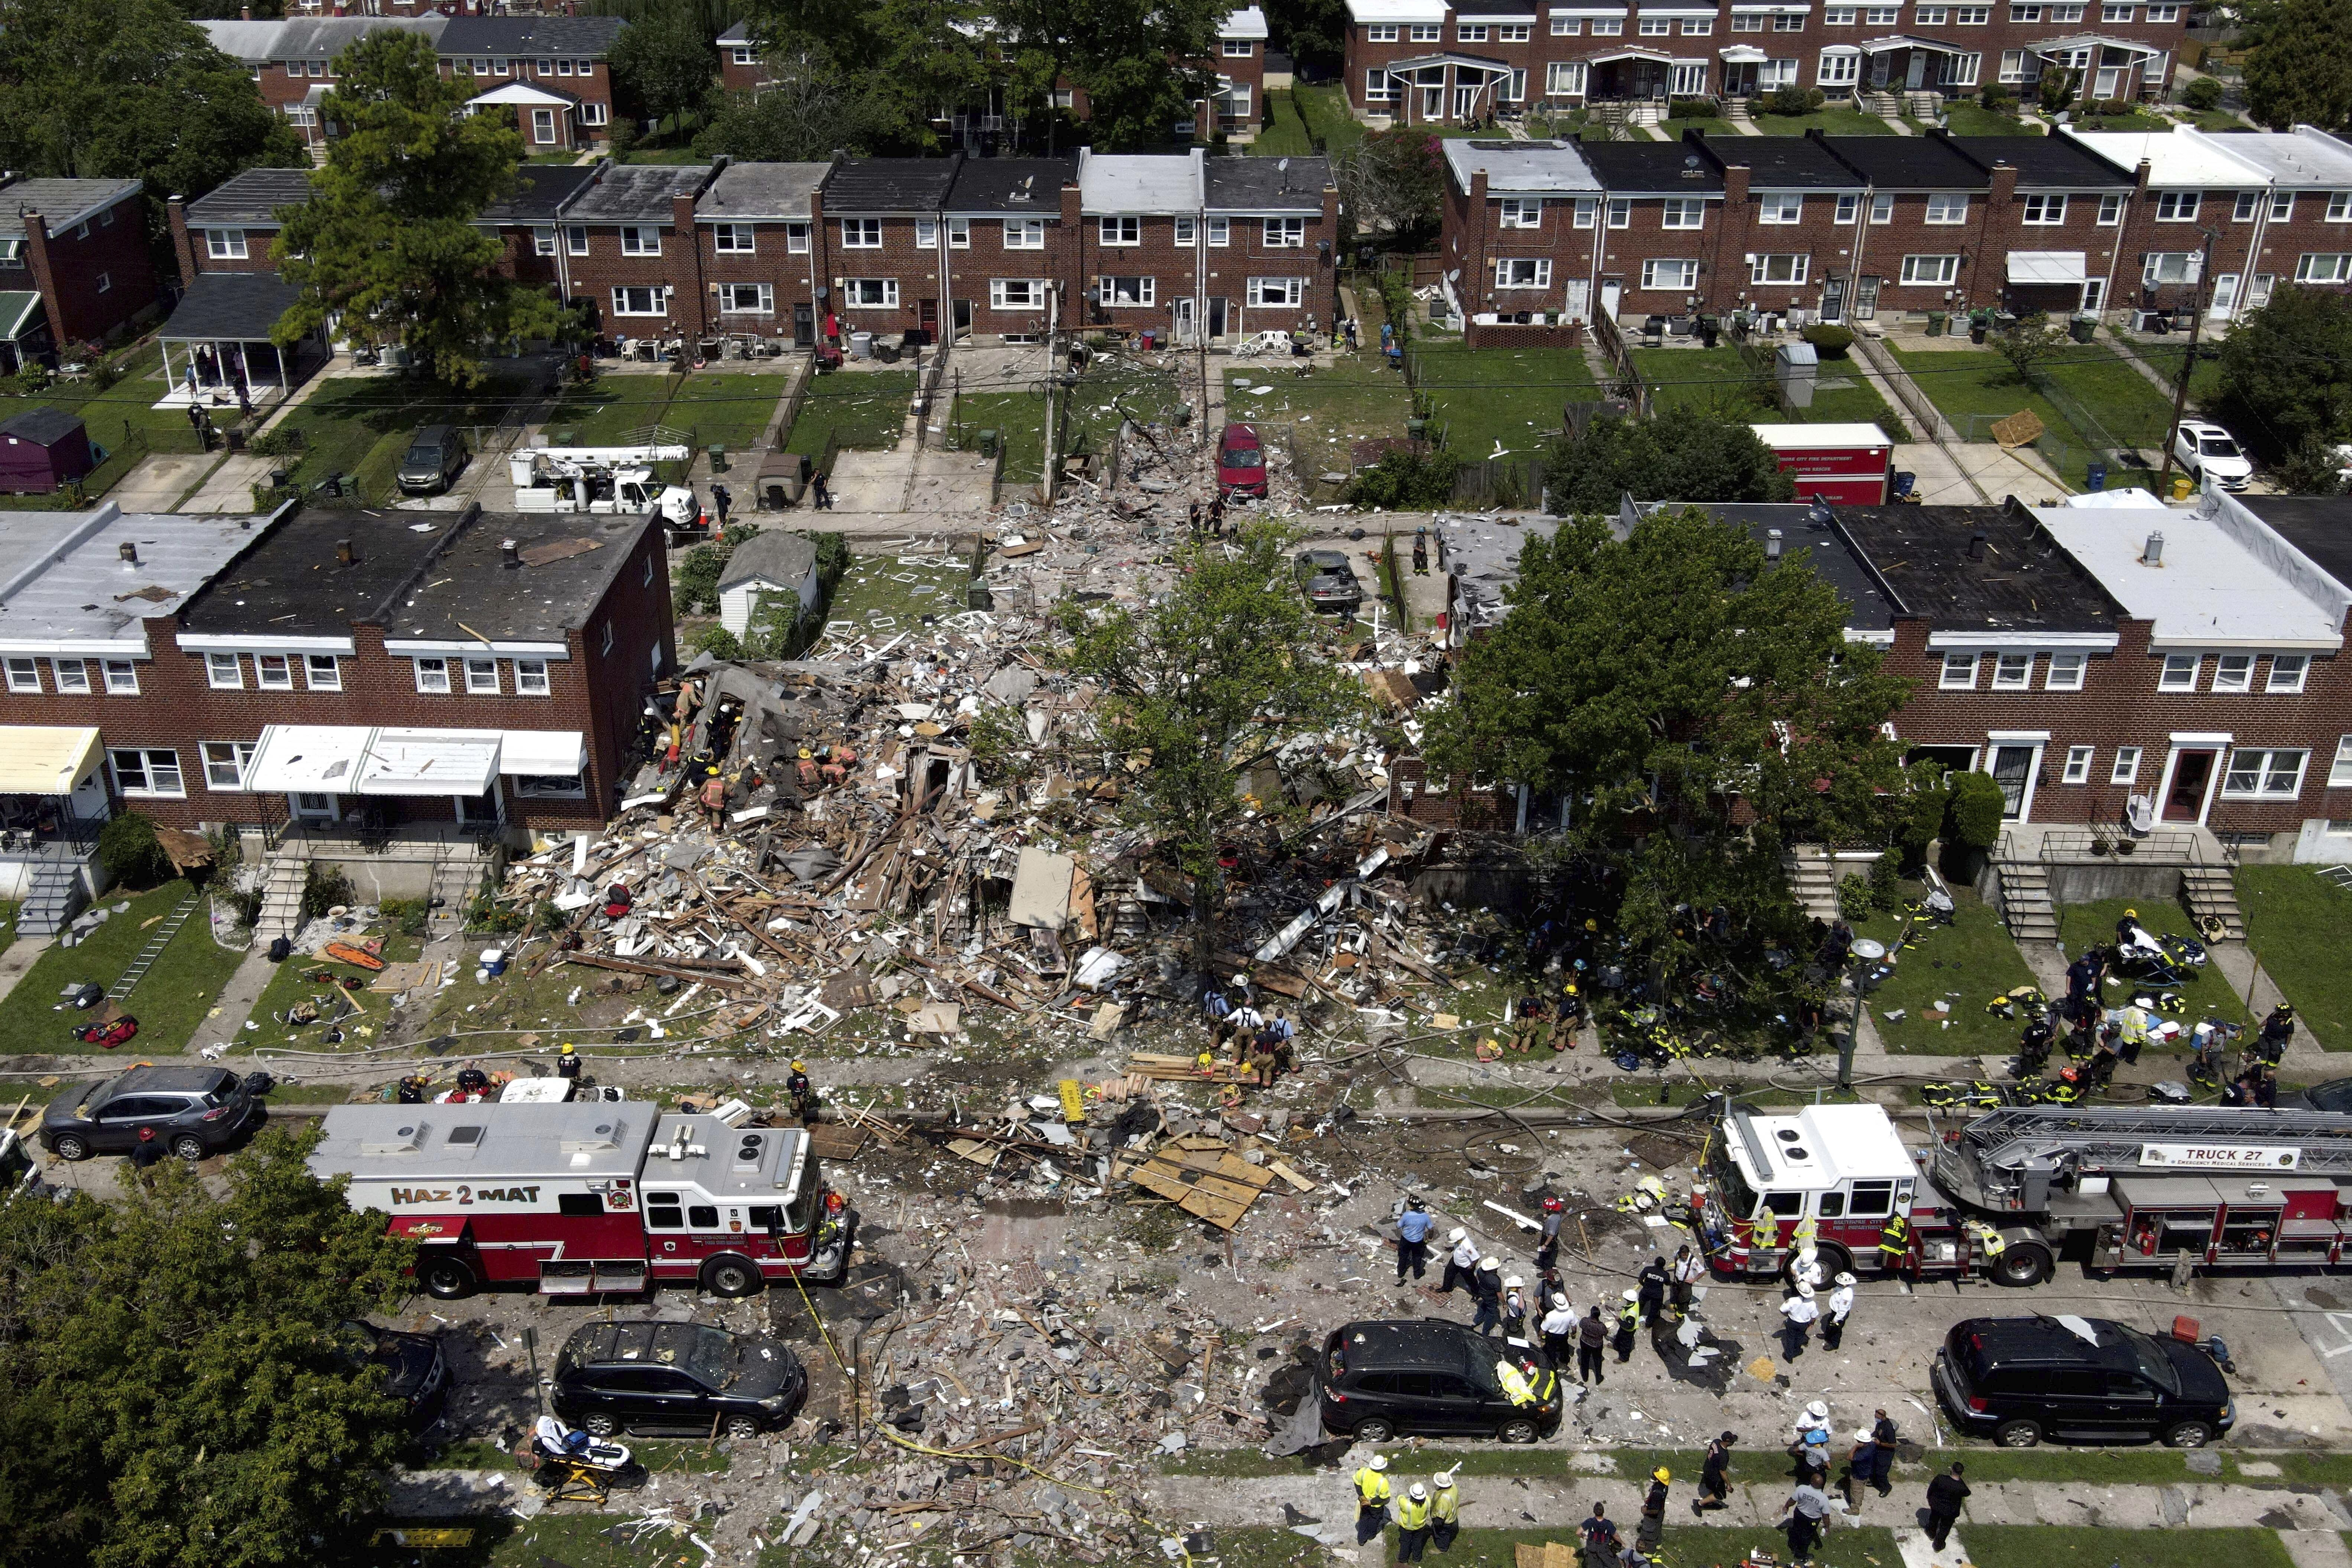 Debris and rubble covers the ground in the aftermath of an explosion in Baltimore on Monday, Aug. 10, 2020. Baltimore firefighters say an explosion has leveled several homes in the city. (AP Photo/Julio Cortez)